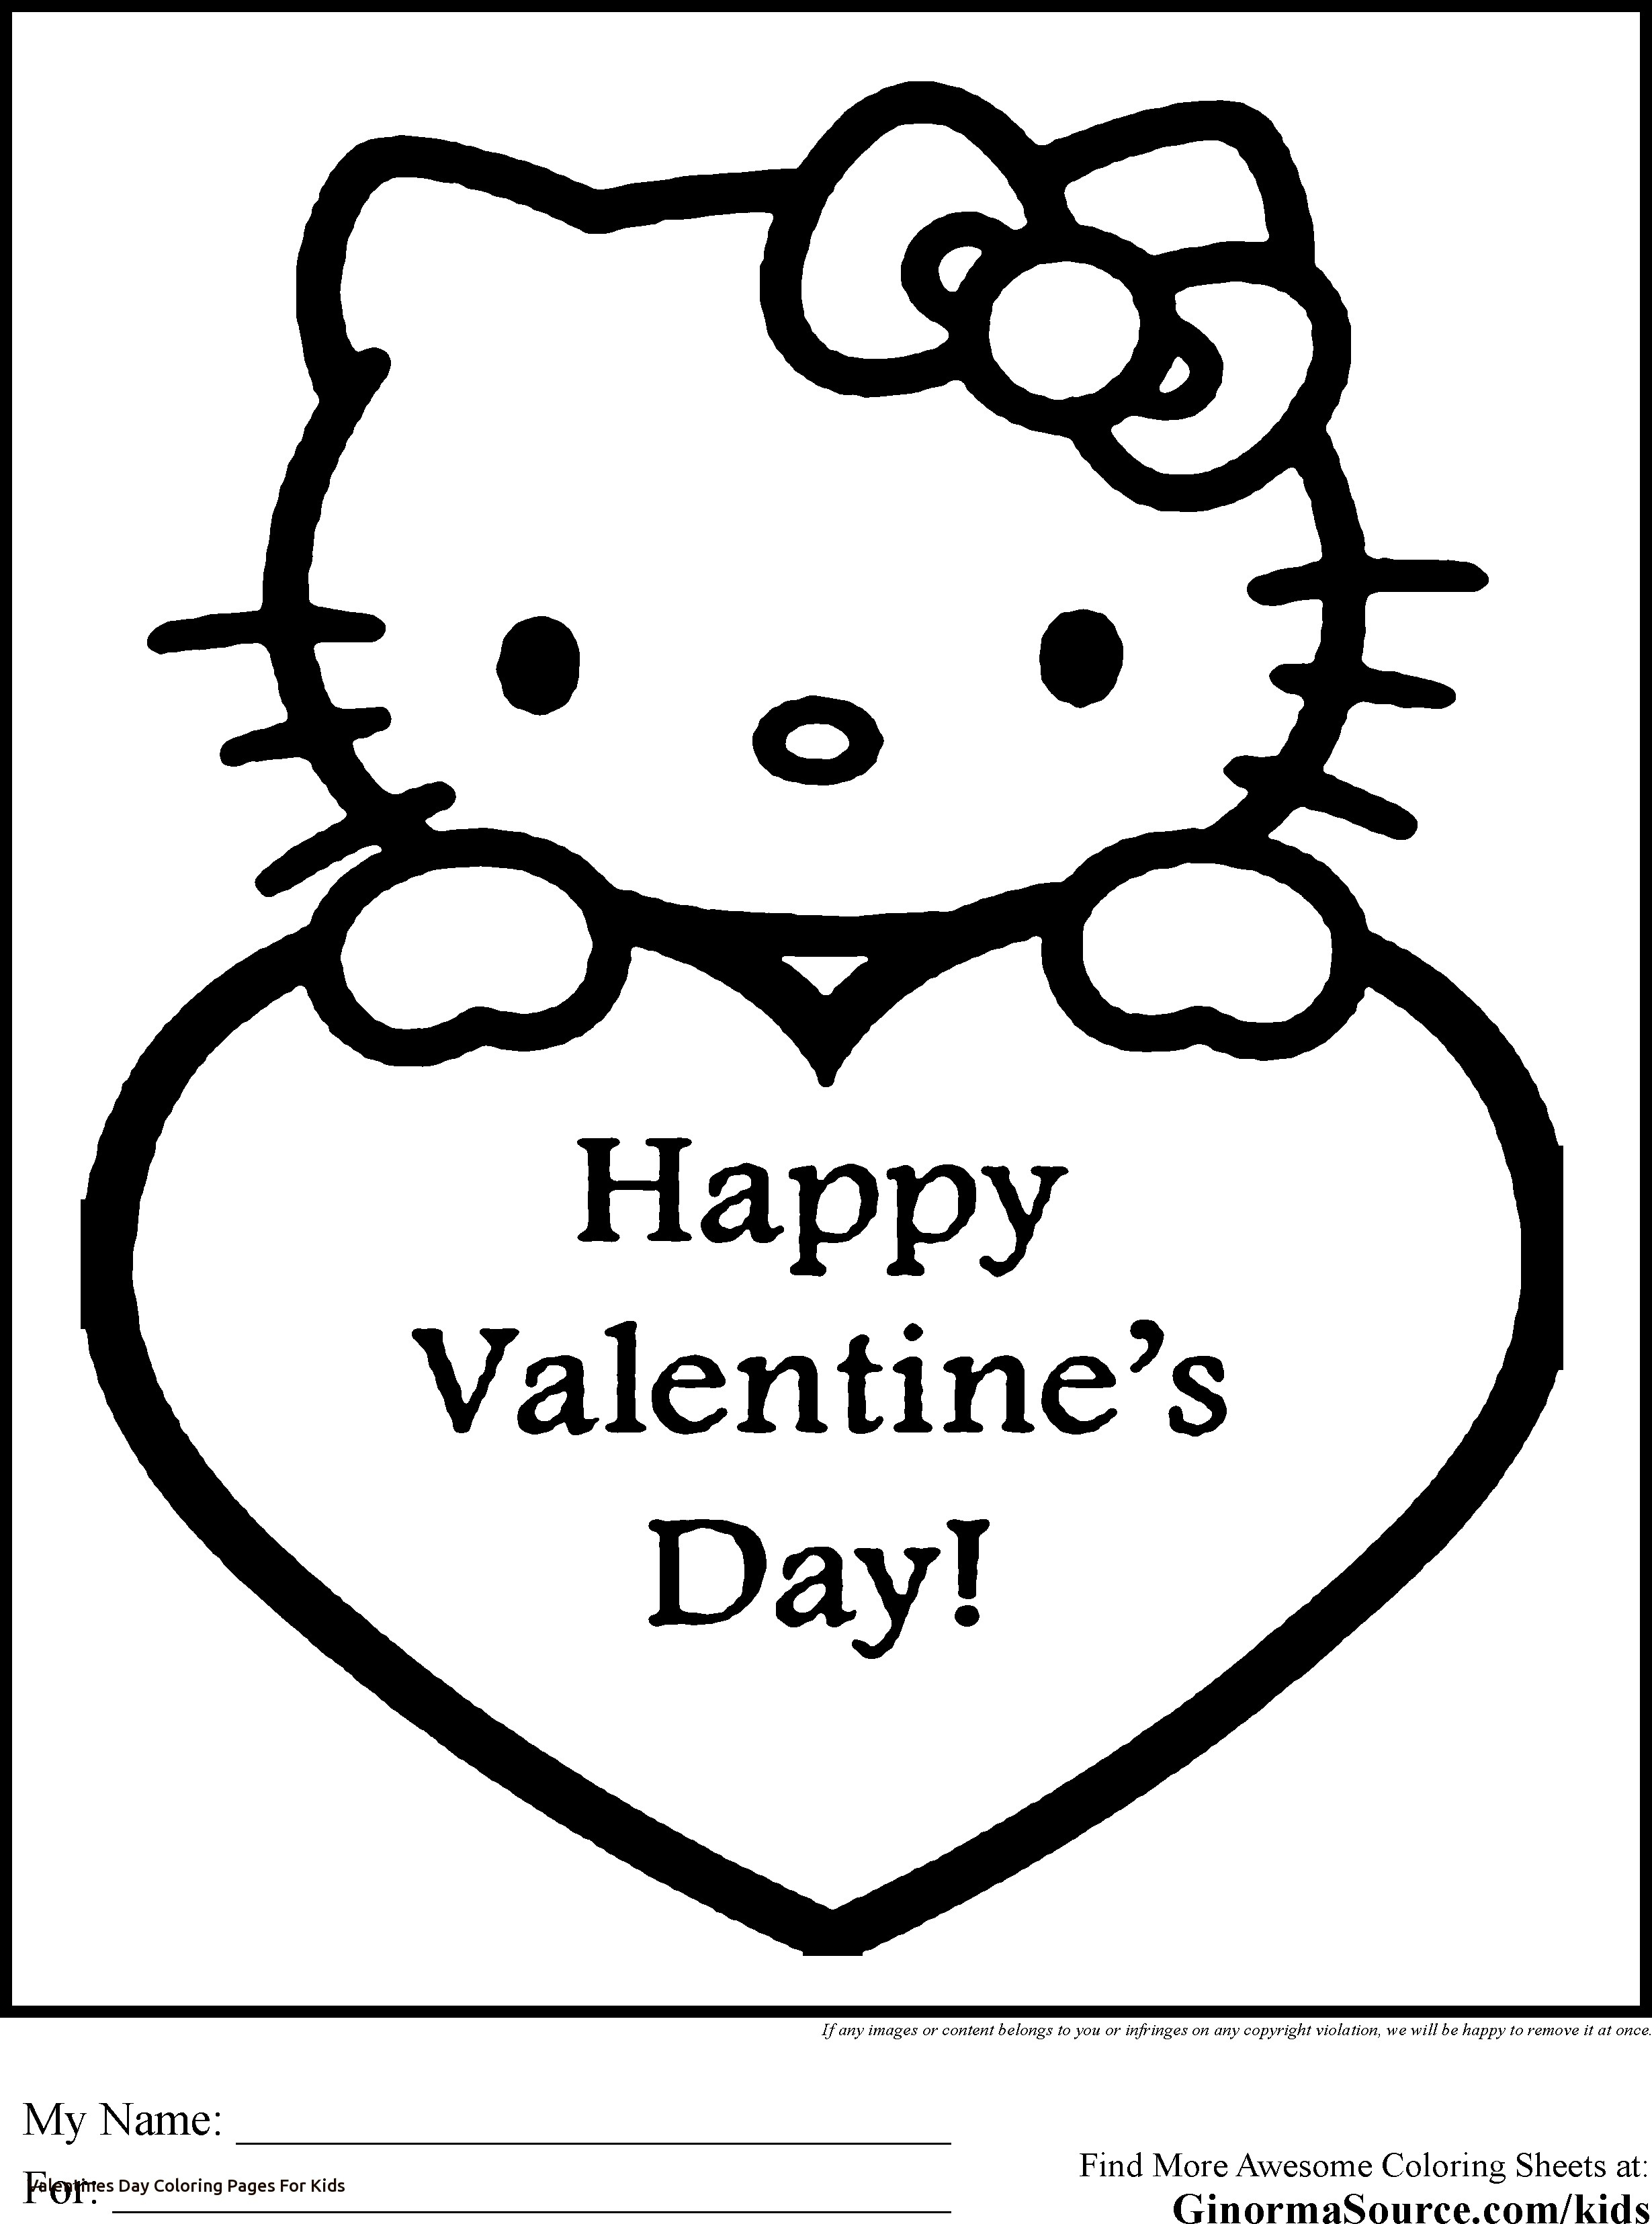 Coloring Pages : Valentine Coloring Sheets Free Printable Valentines - Free Printable Valentine Coloring Pages